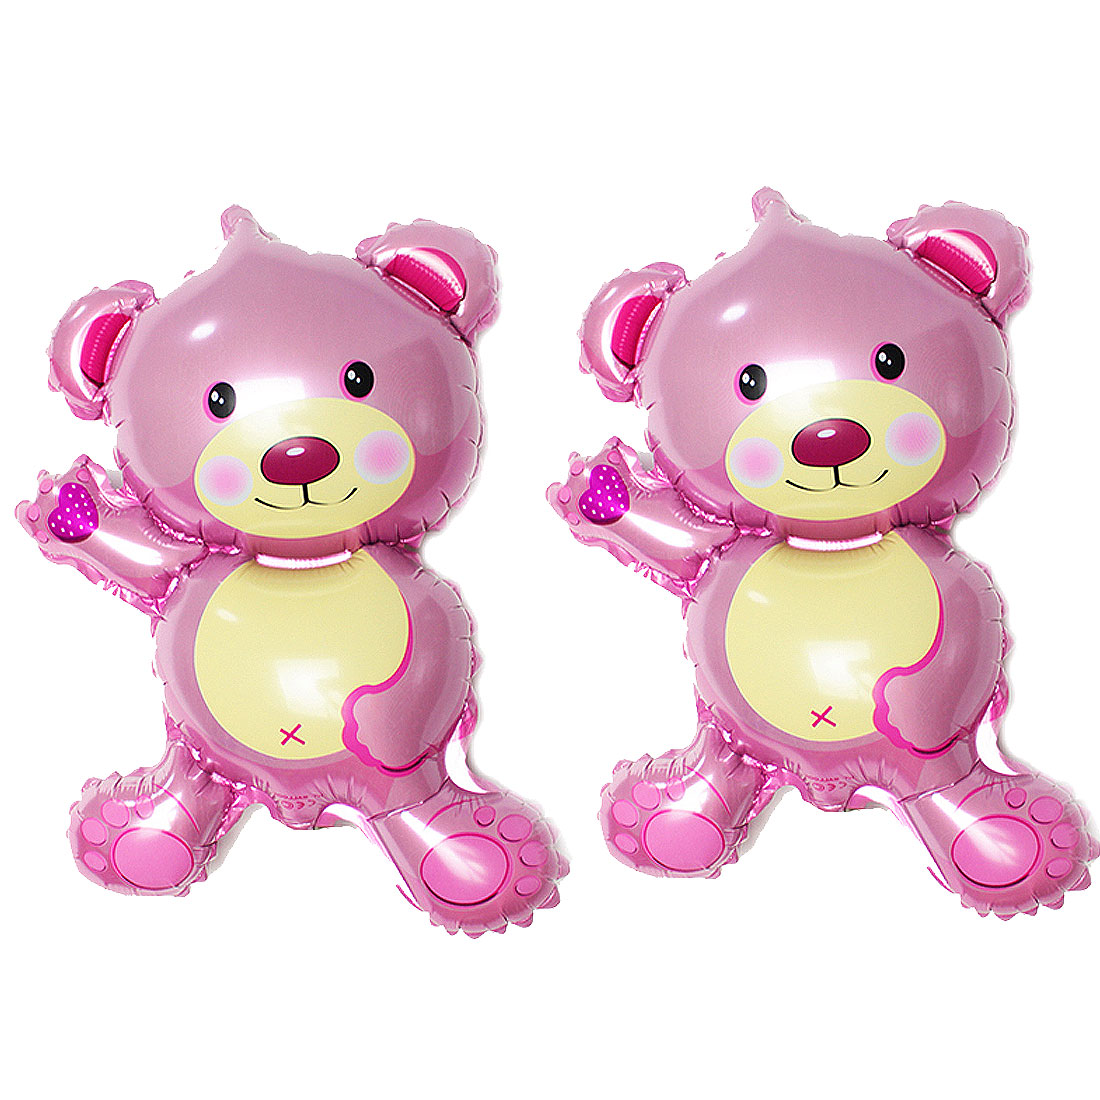 Birthday Festival Foil Cartoon Decoration Bear Balloon Pink 2 PCS